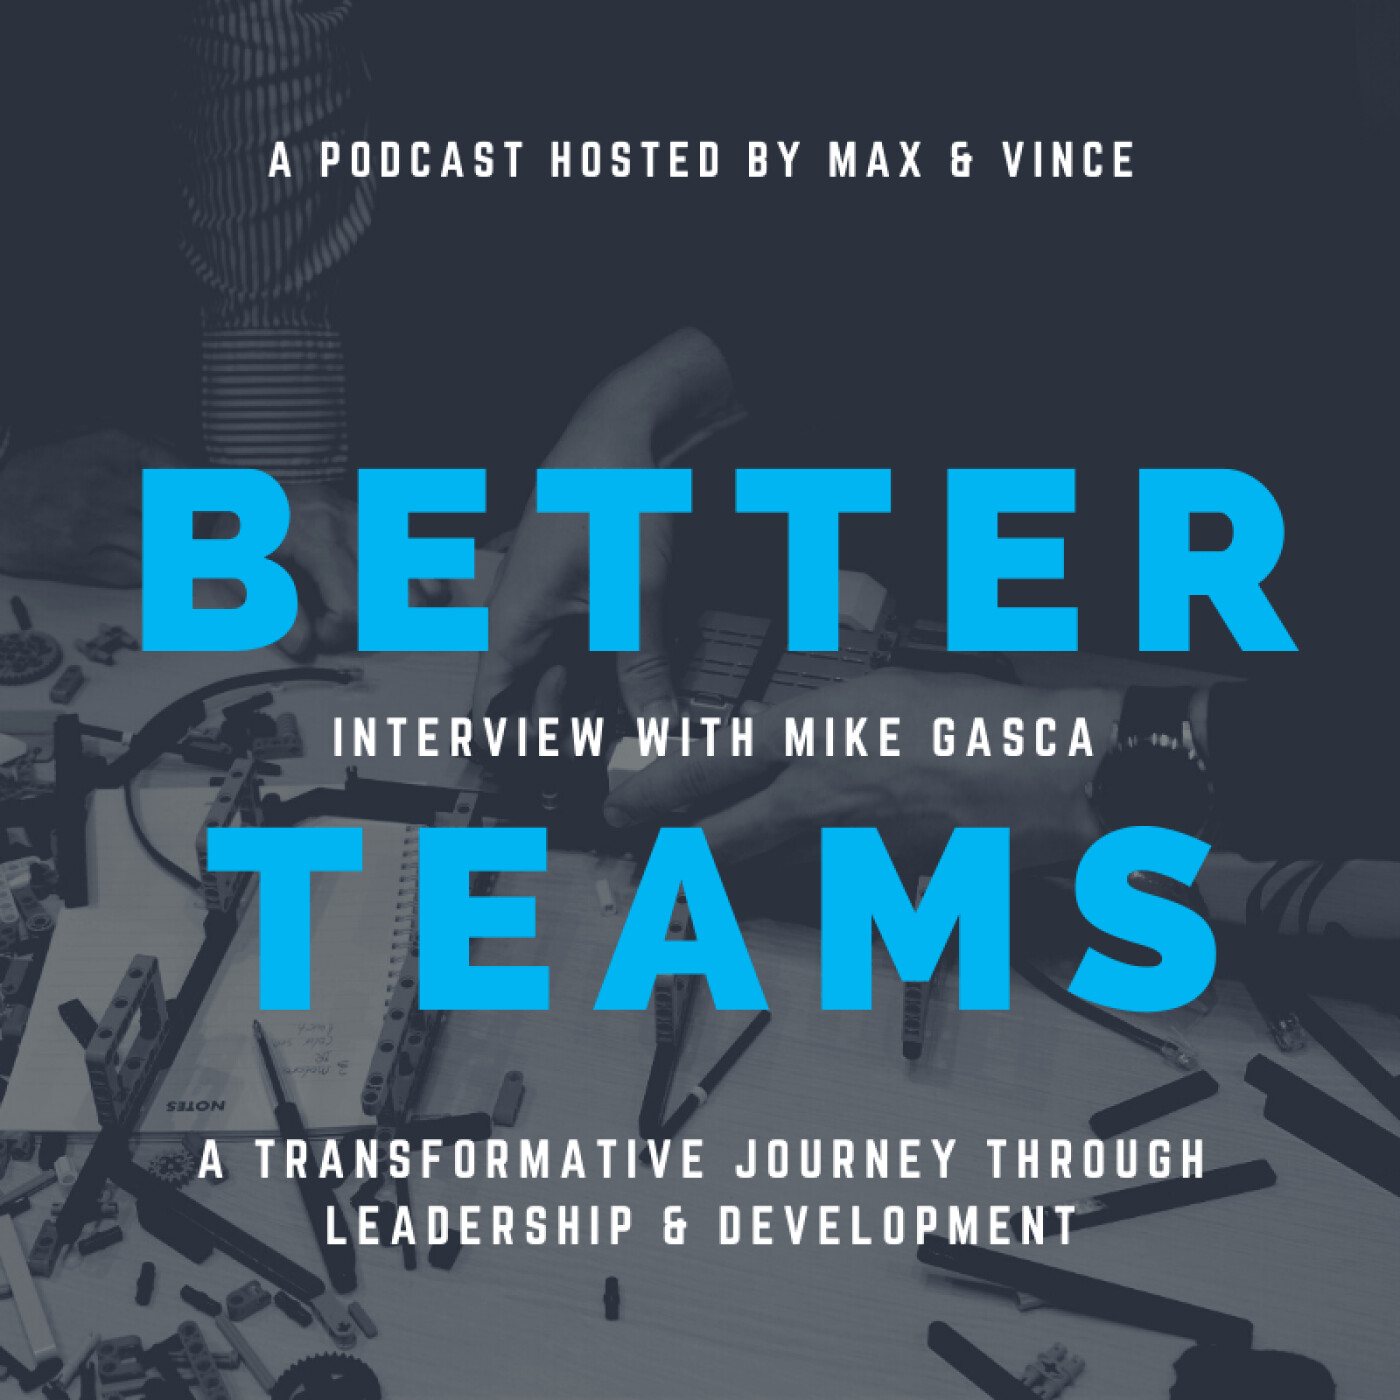 A Transformative Journey Through Leadership & Development - Interview with Mike Gasca